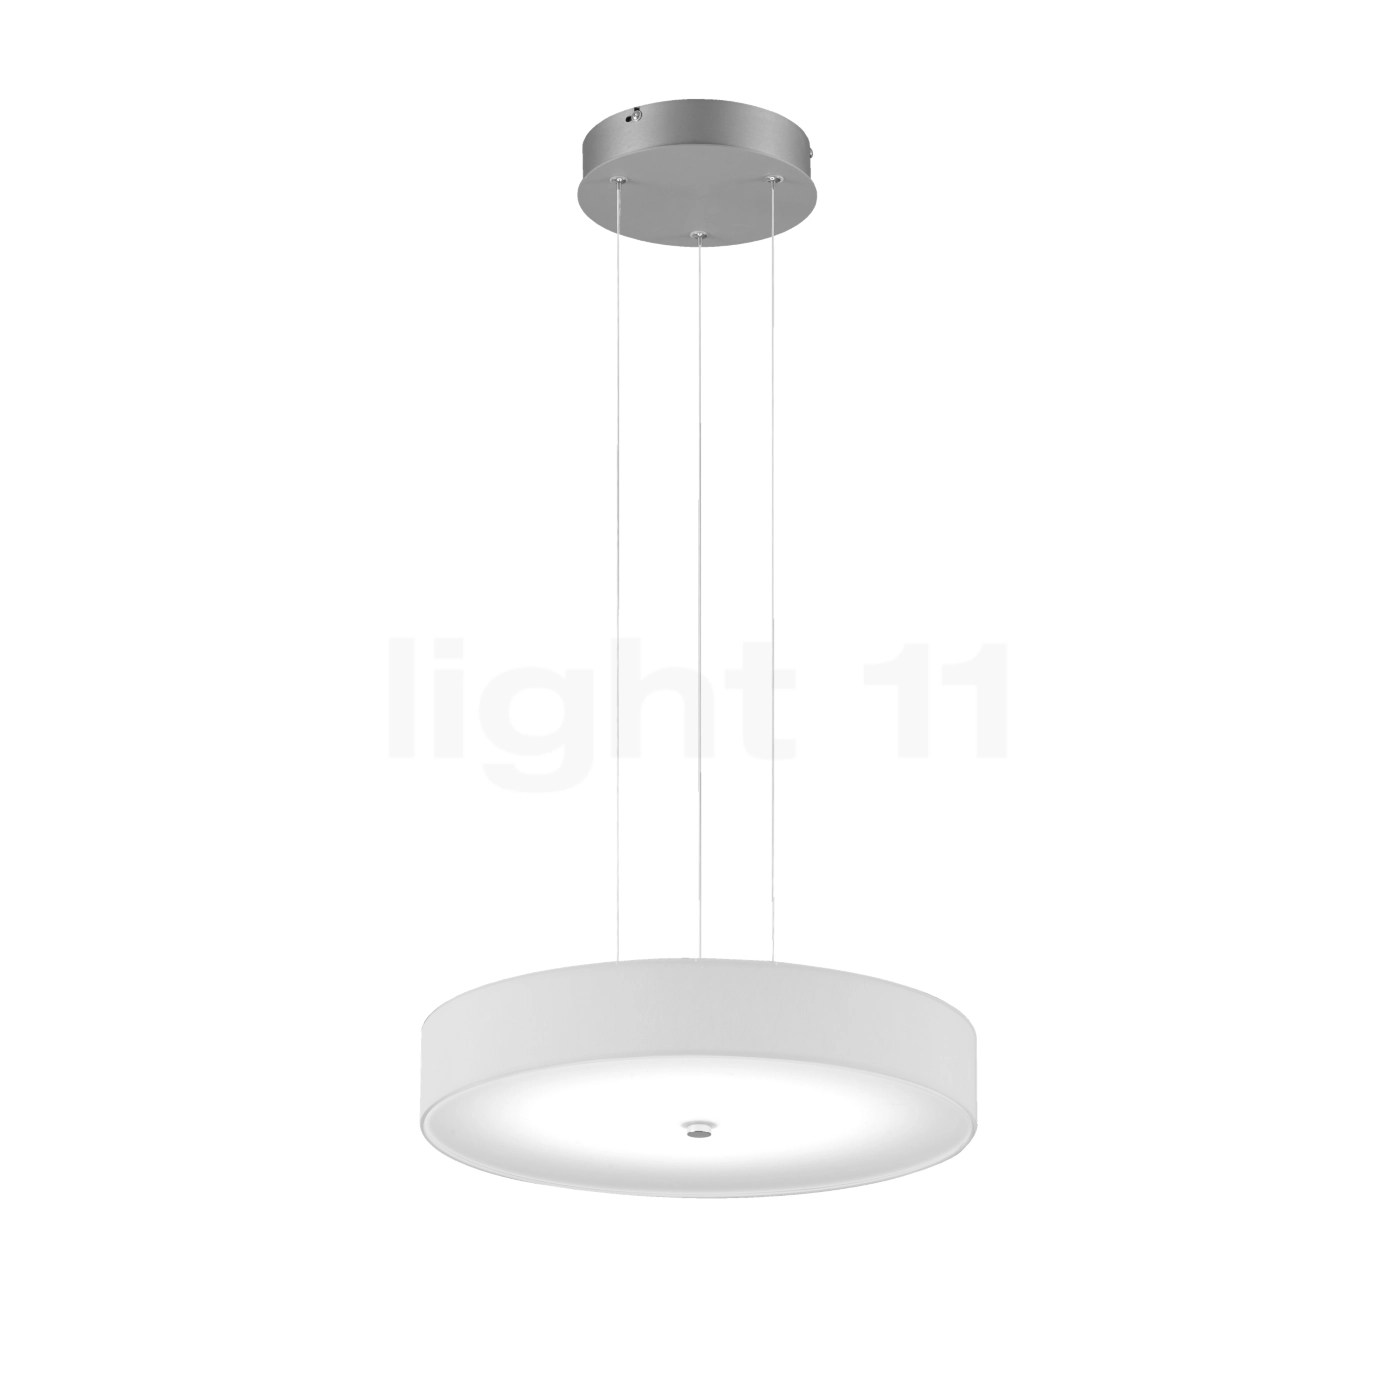 Suspension Ronde Helestra Bora Suspension Ronde Led En Vente Sur Light11 Fr